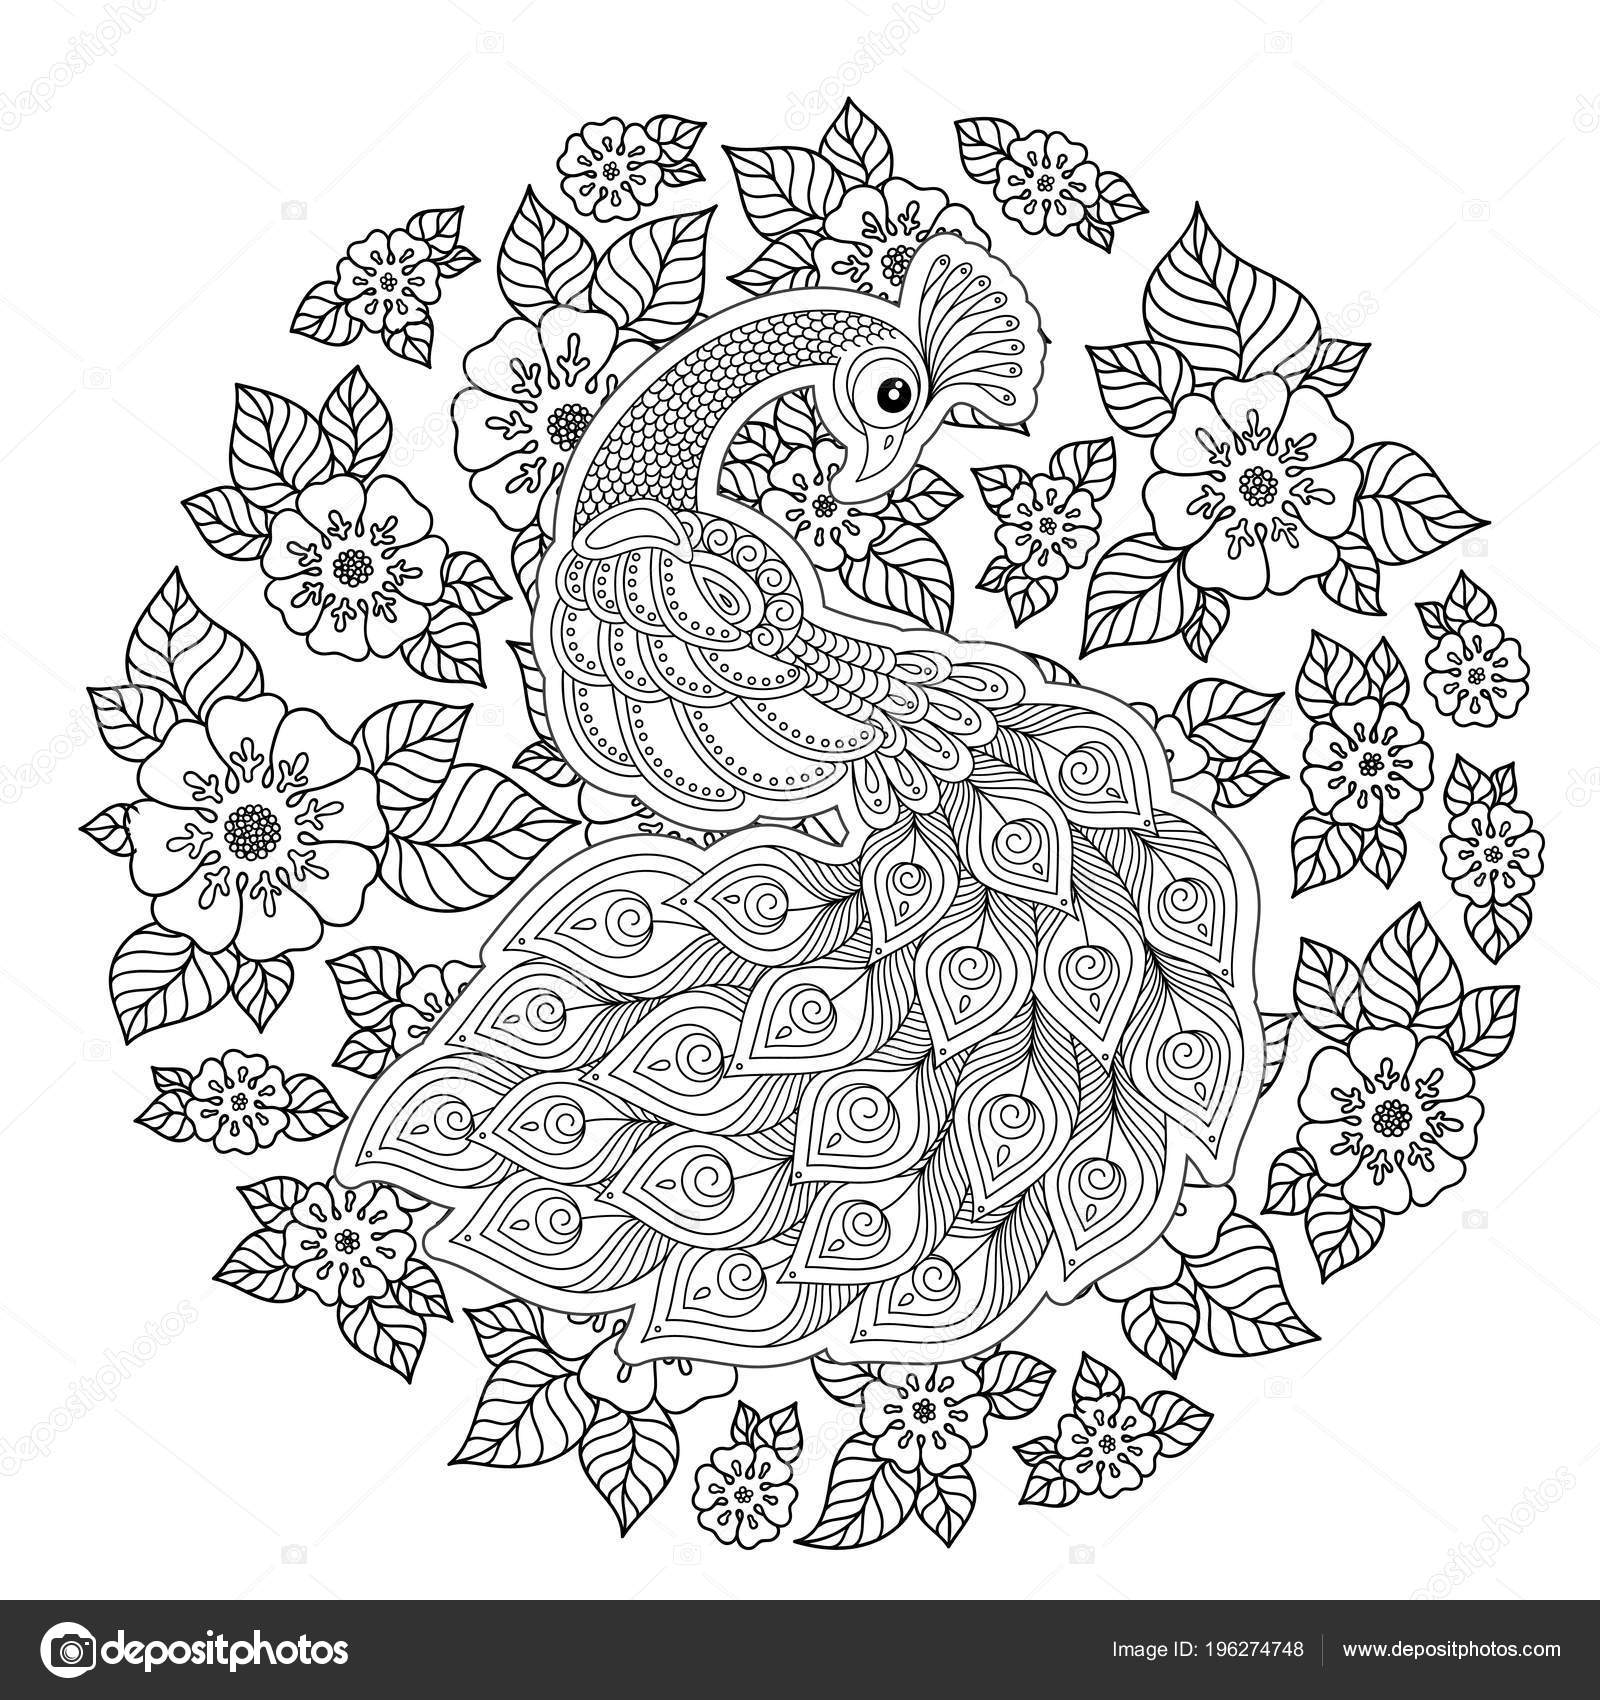 depositphotos stock illustration peacock adult antistress coloring page